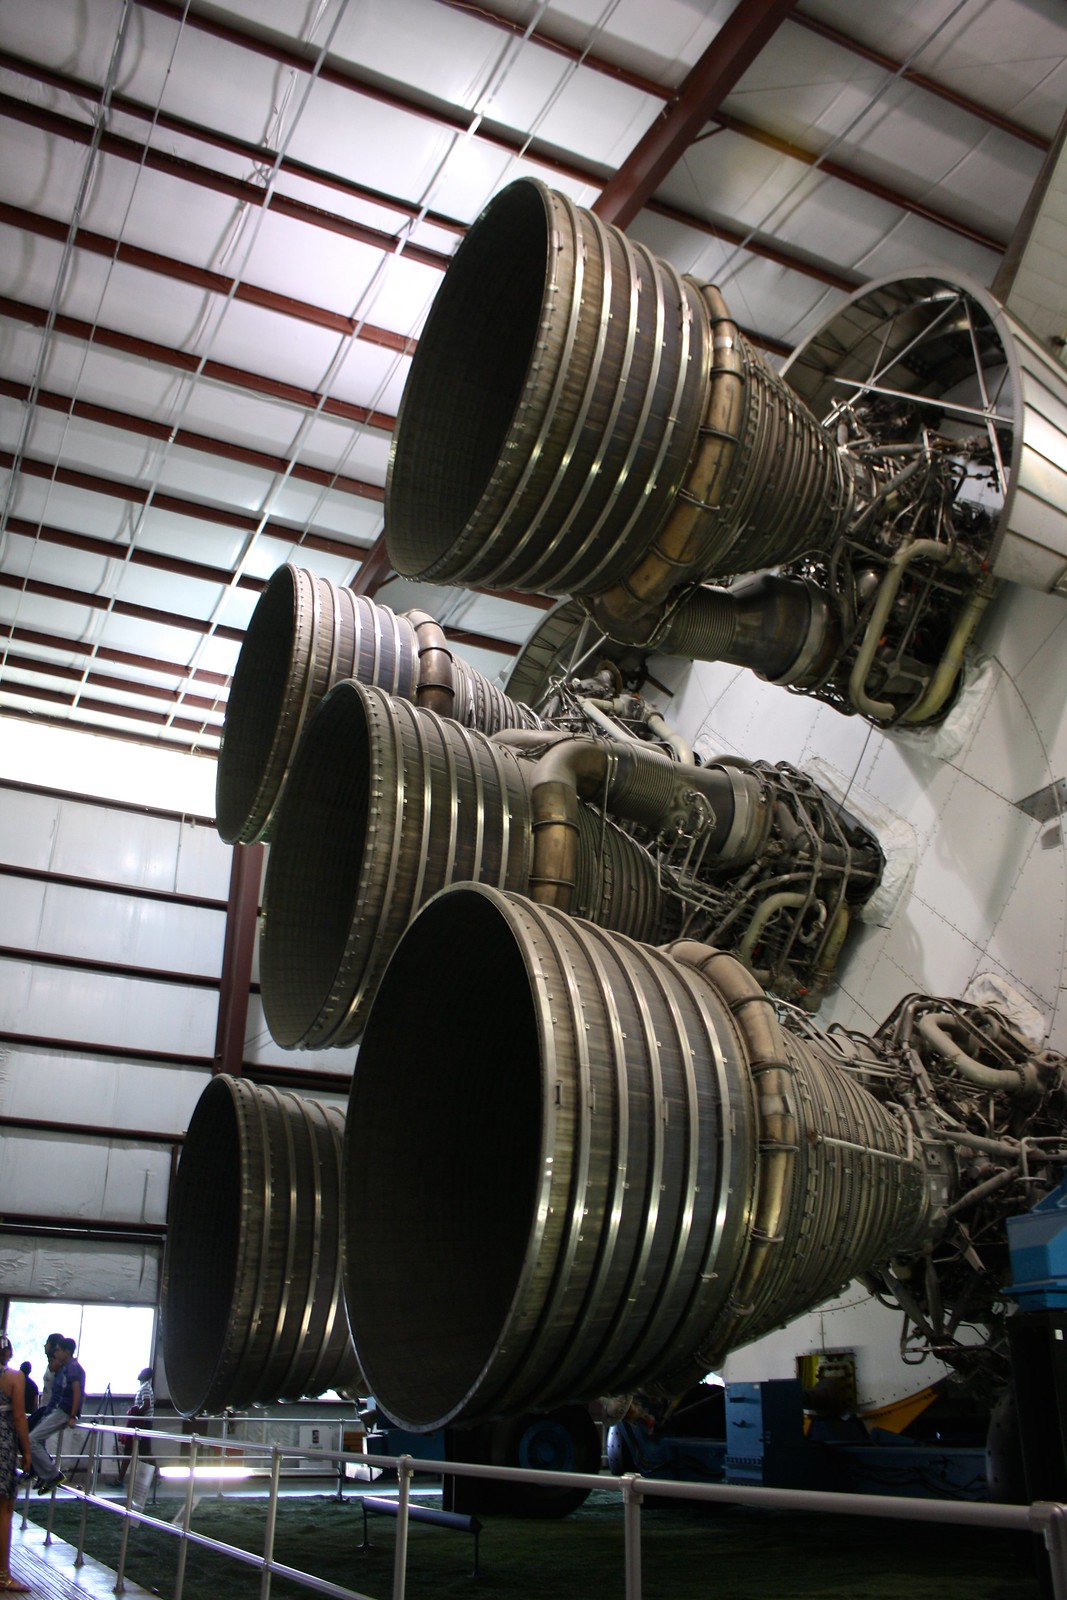 Saturn V rocket, Houston, Texas